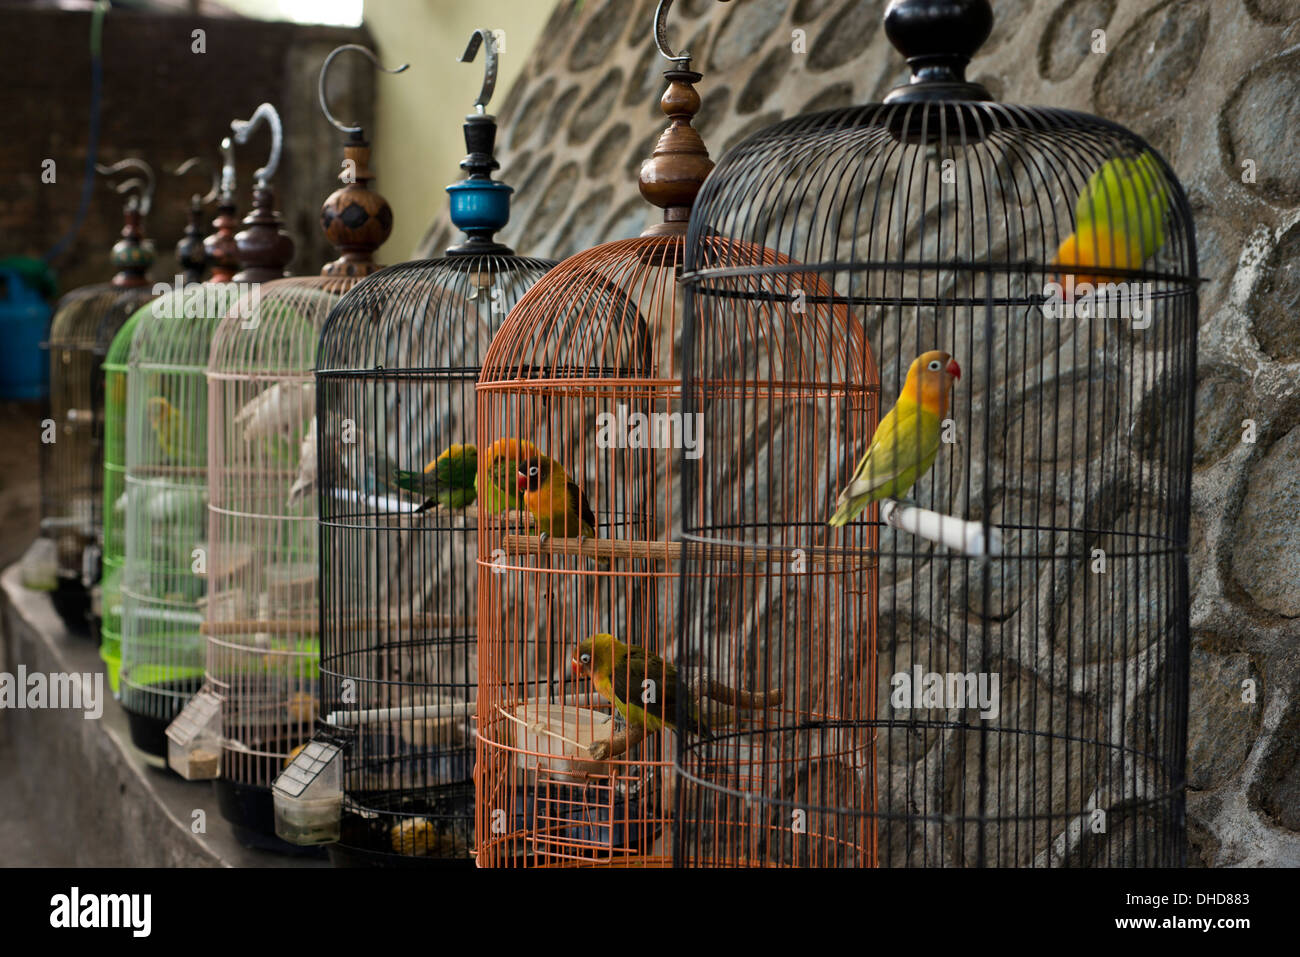 In The Cage: birds sells at the traditional birth market in Malang Indonesia - Stock Image